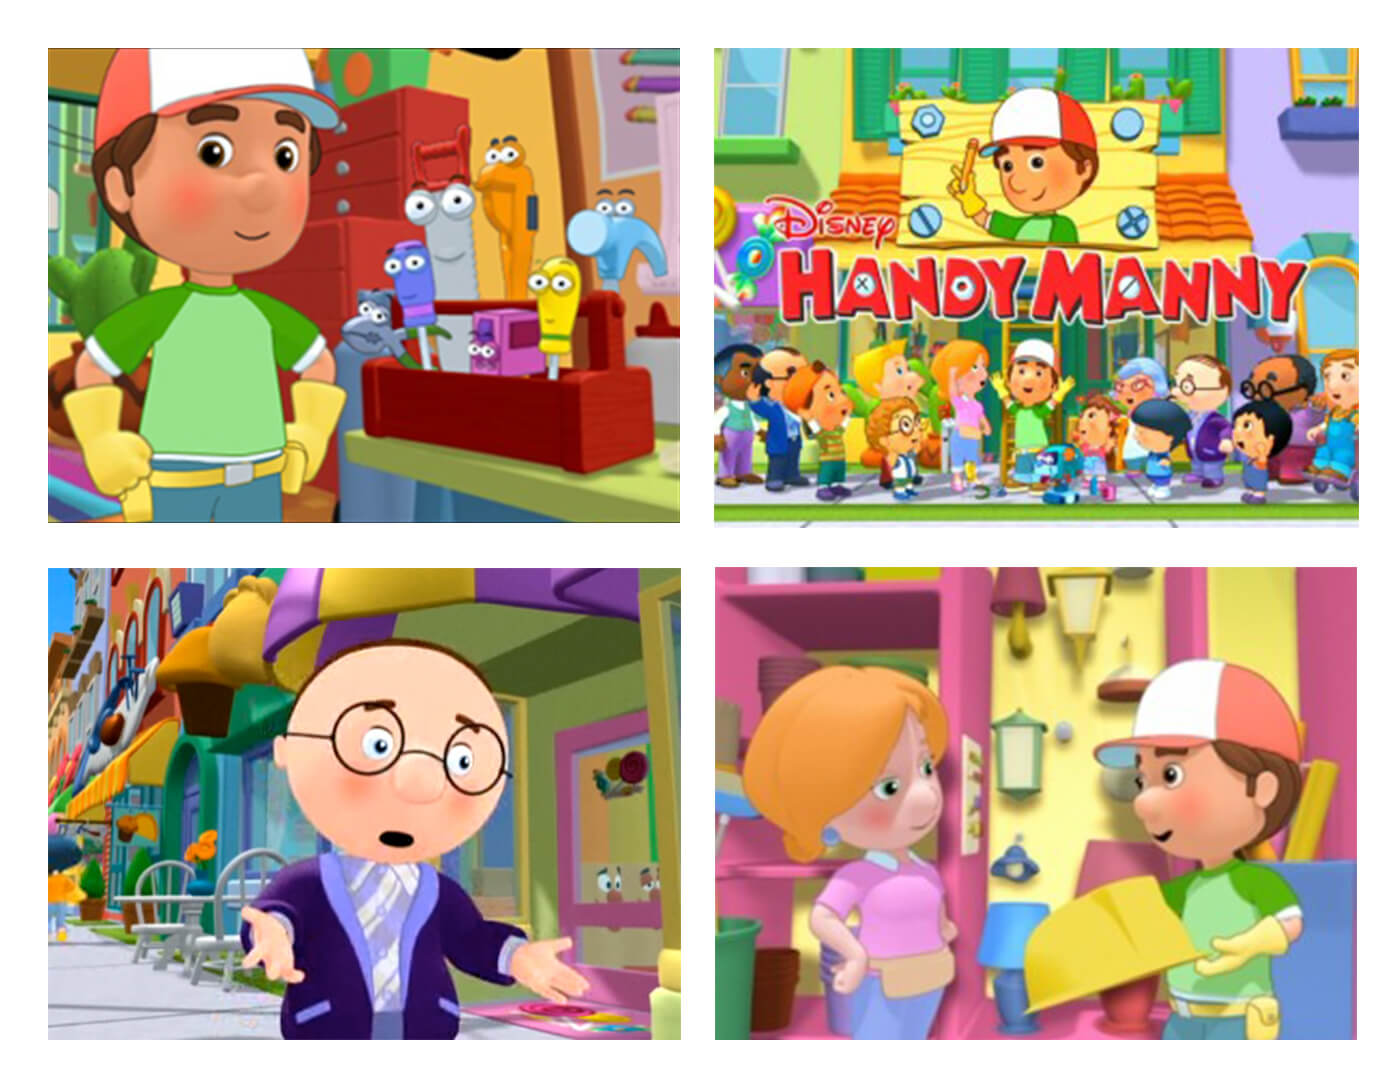 Handy Manny content research